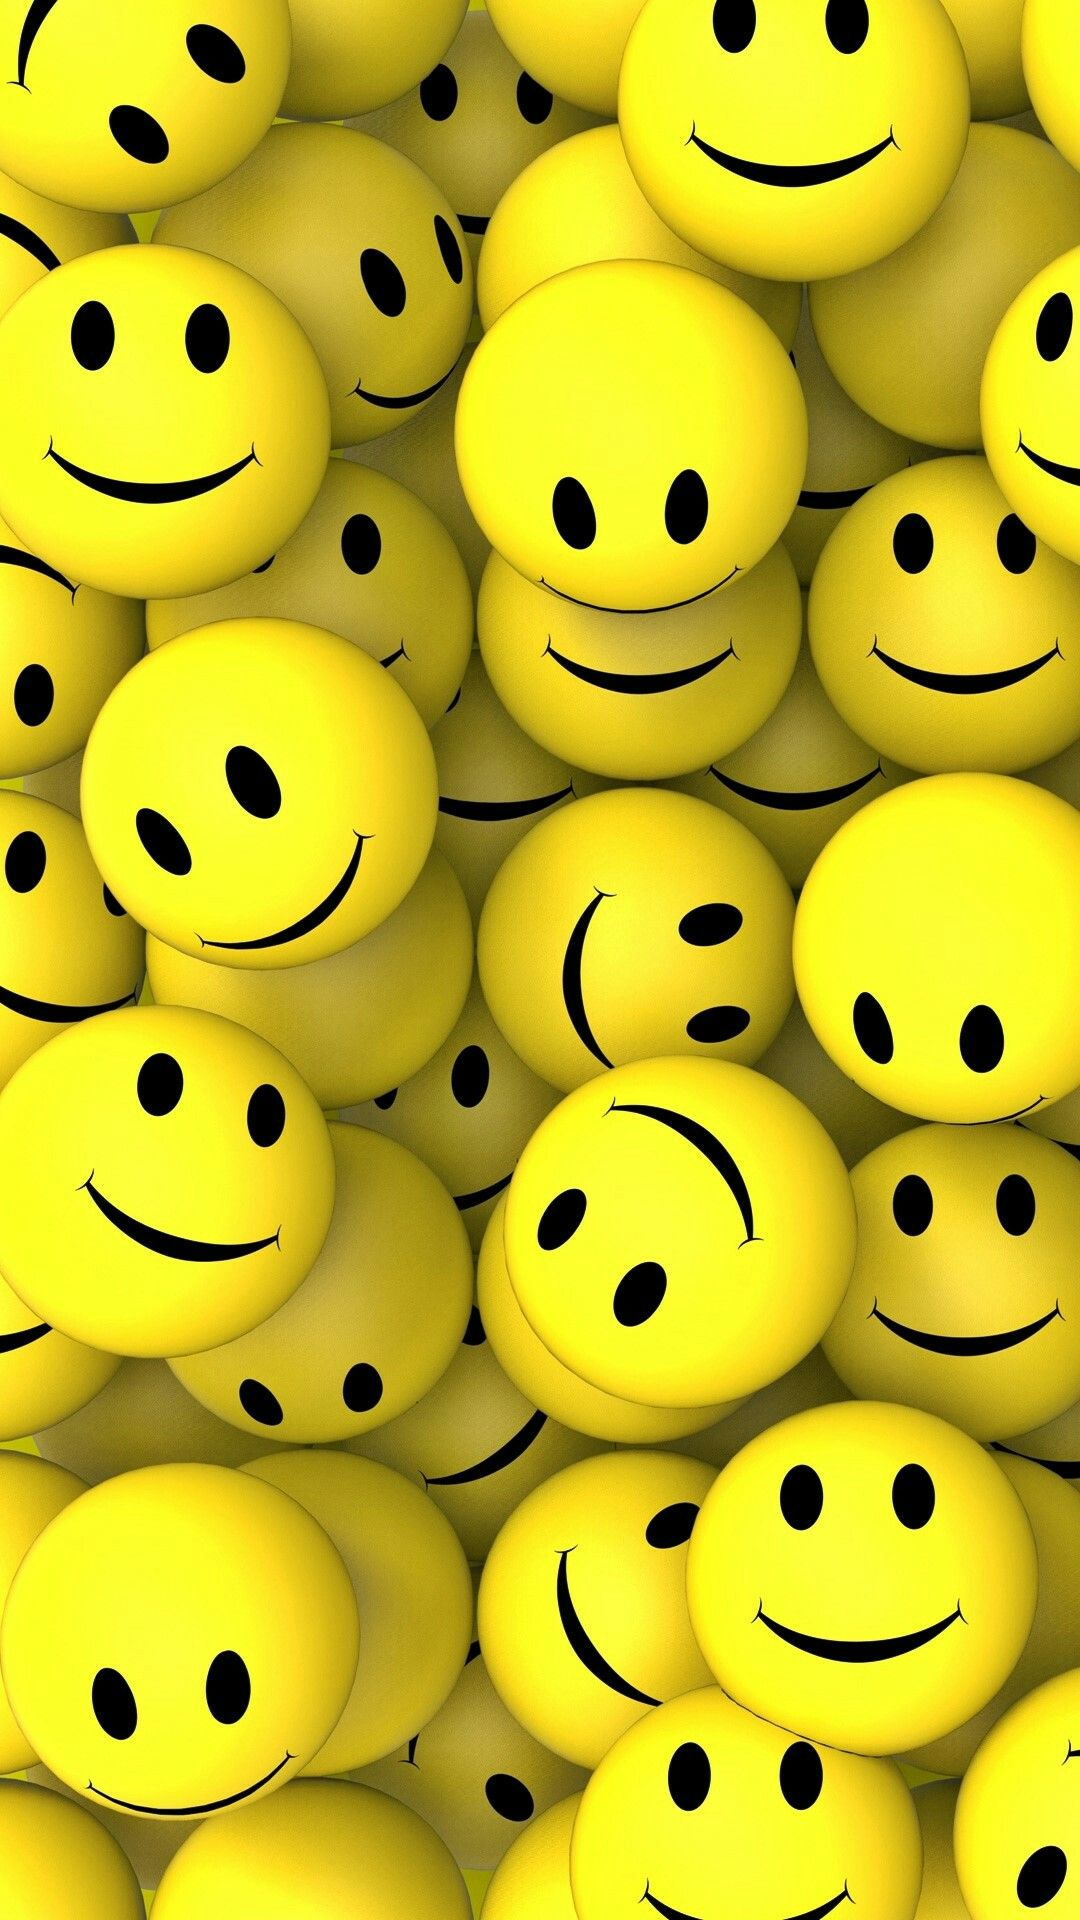 D Smiley D Wallpaper Android Cute Wallpaper For Phone Smile Wallpaper Cool Backgrounds